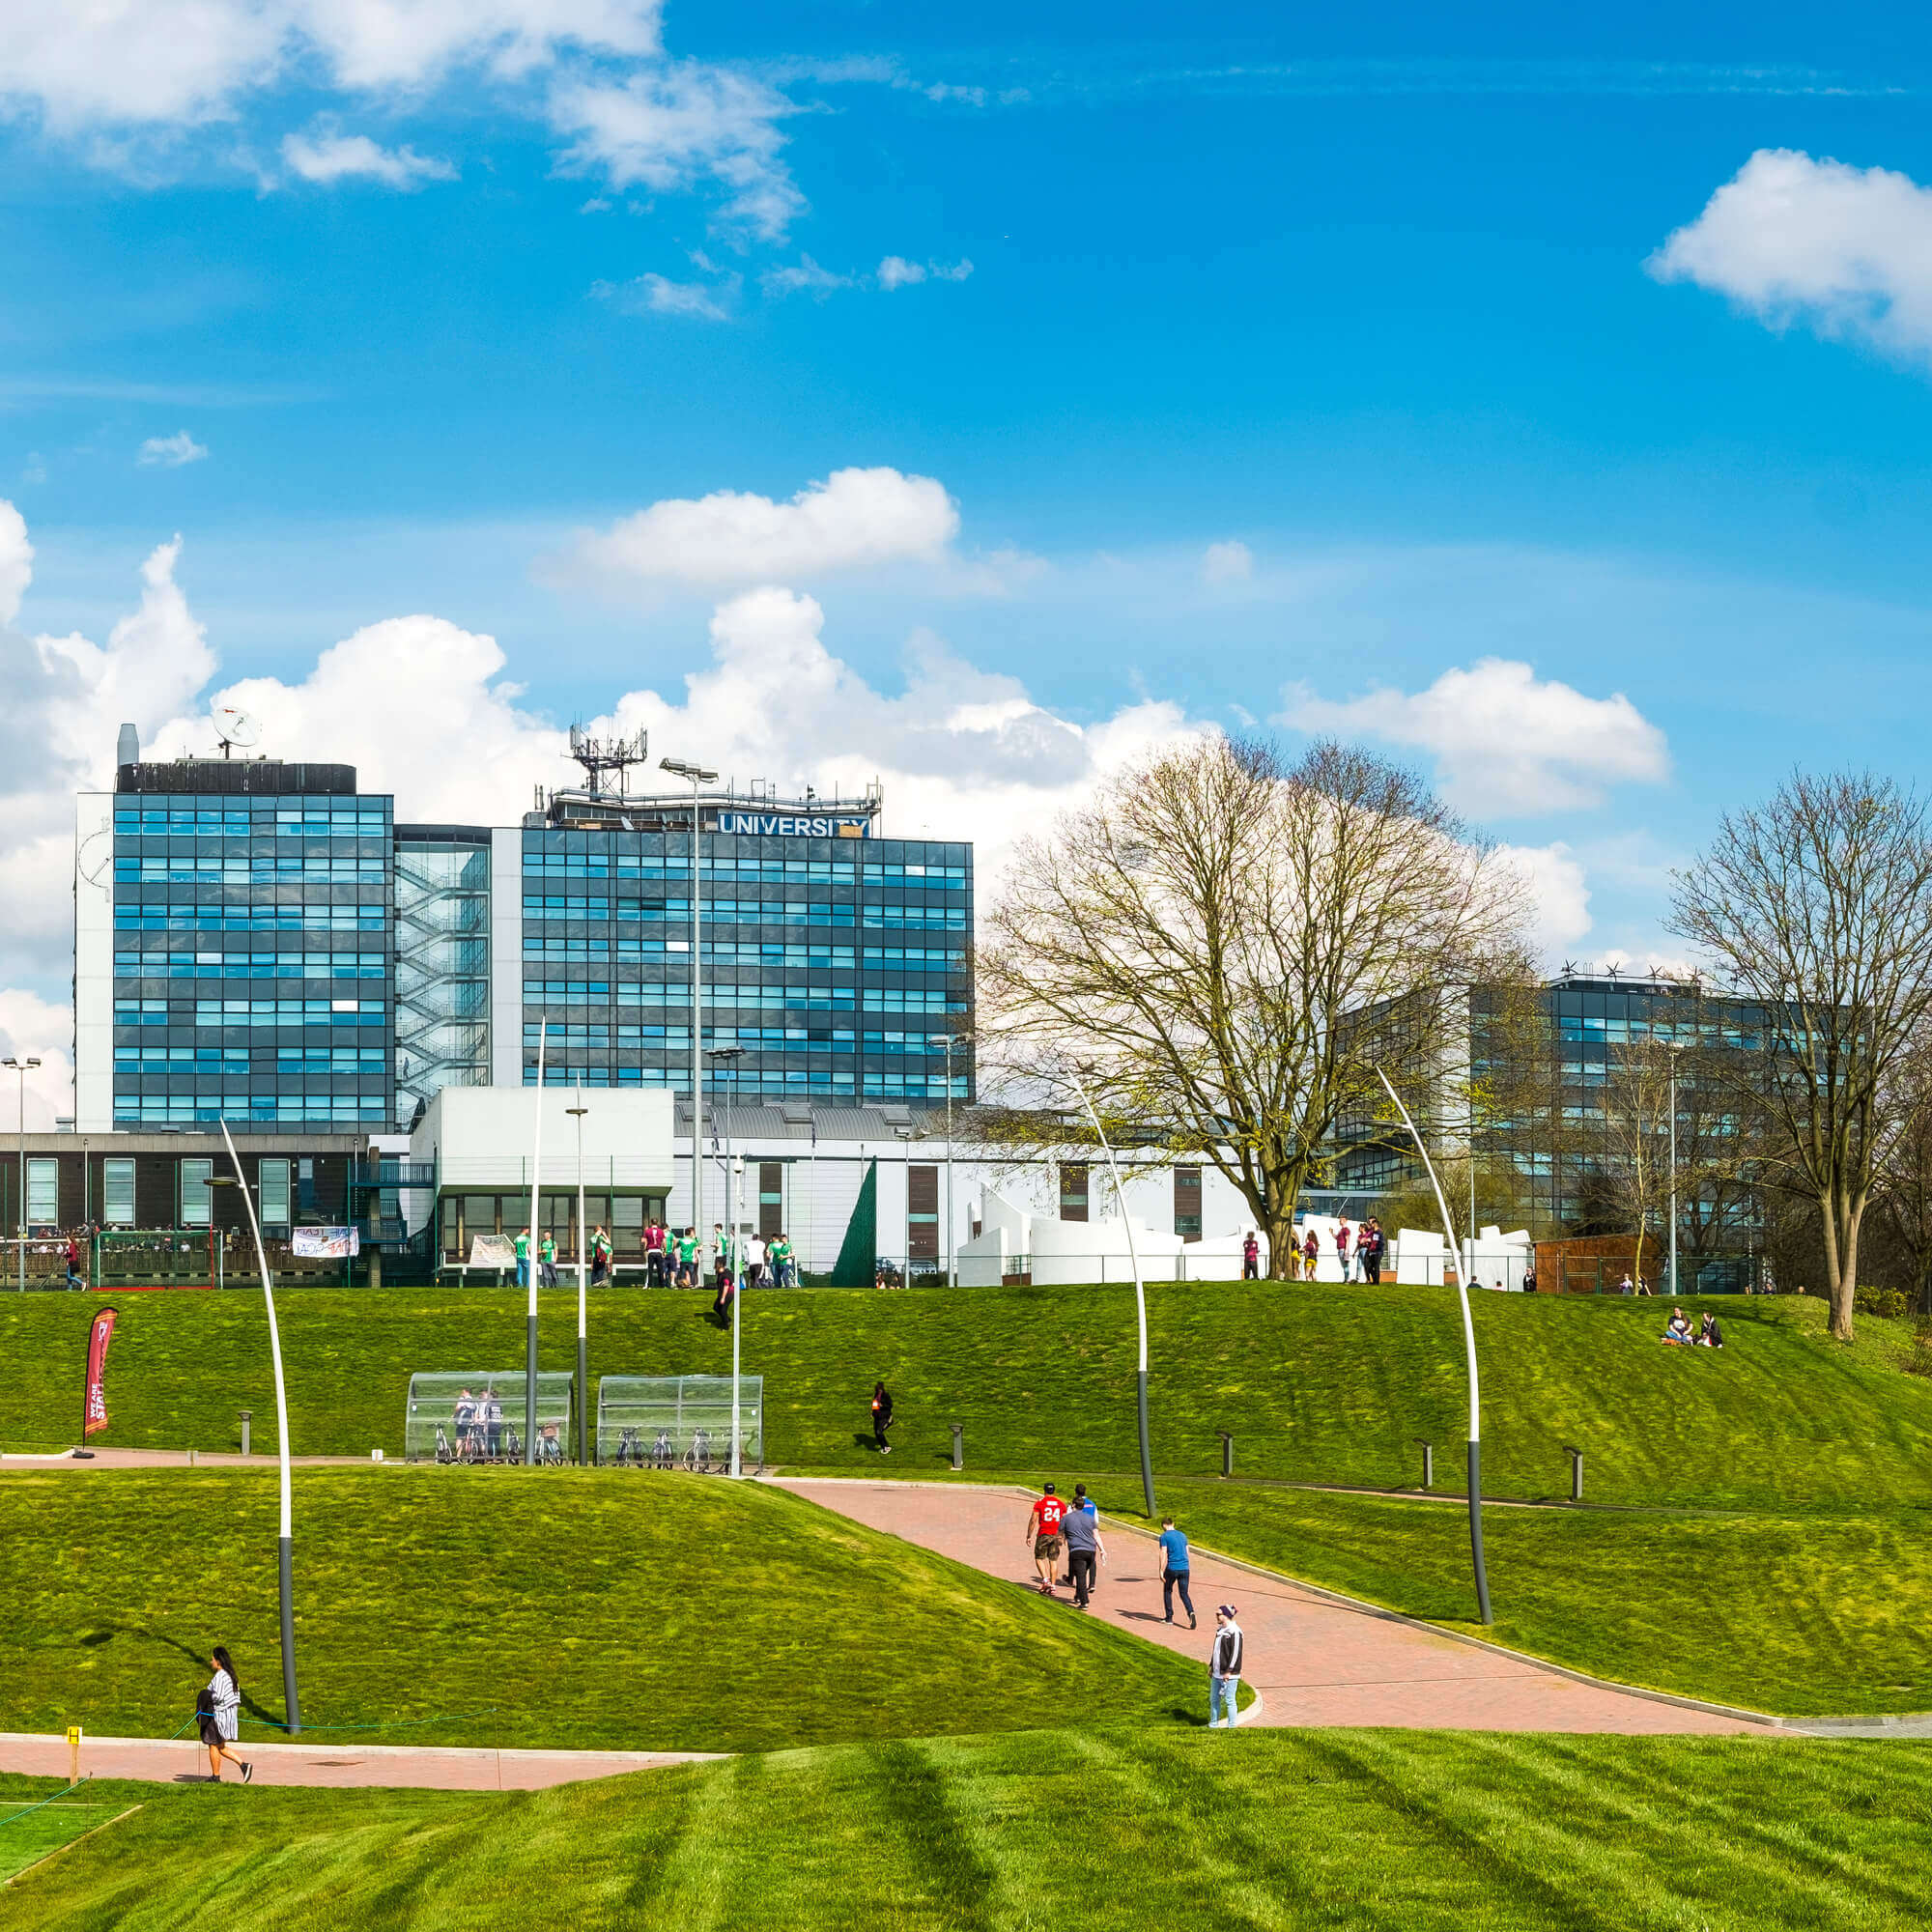 University of Derby's main site at Kedleston Road